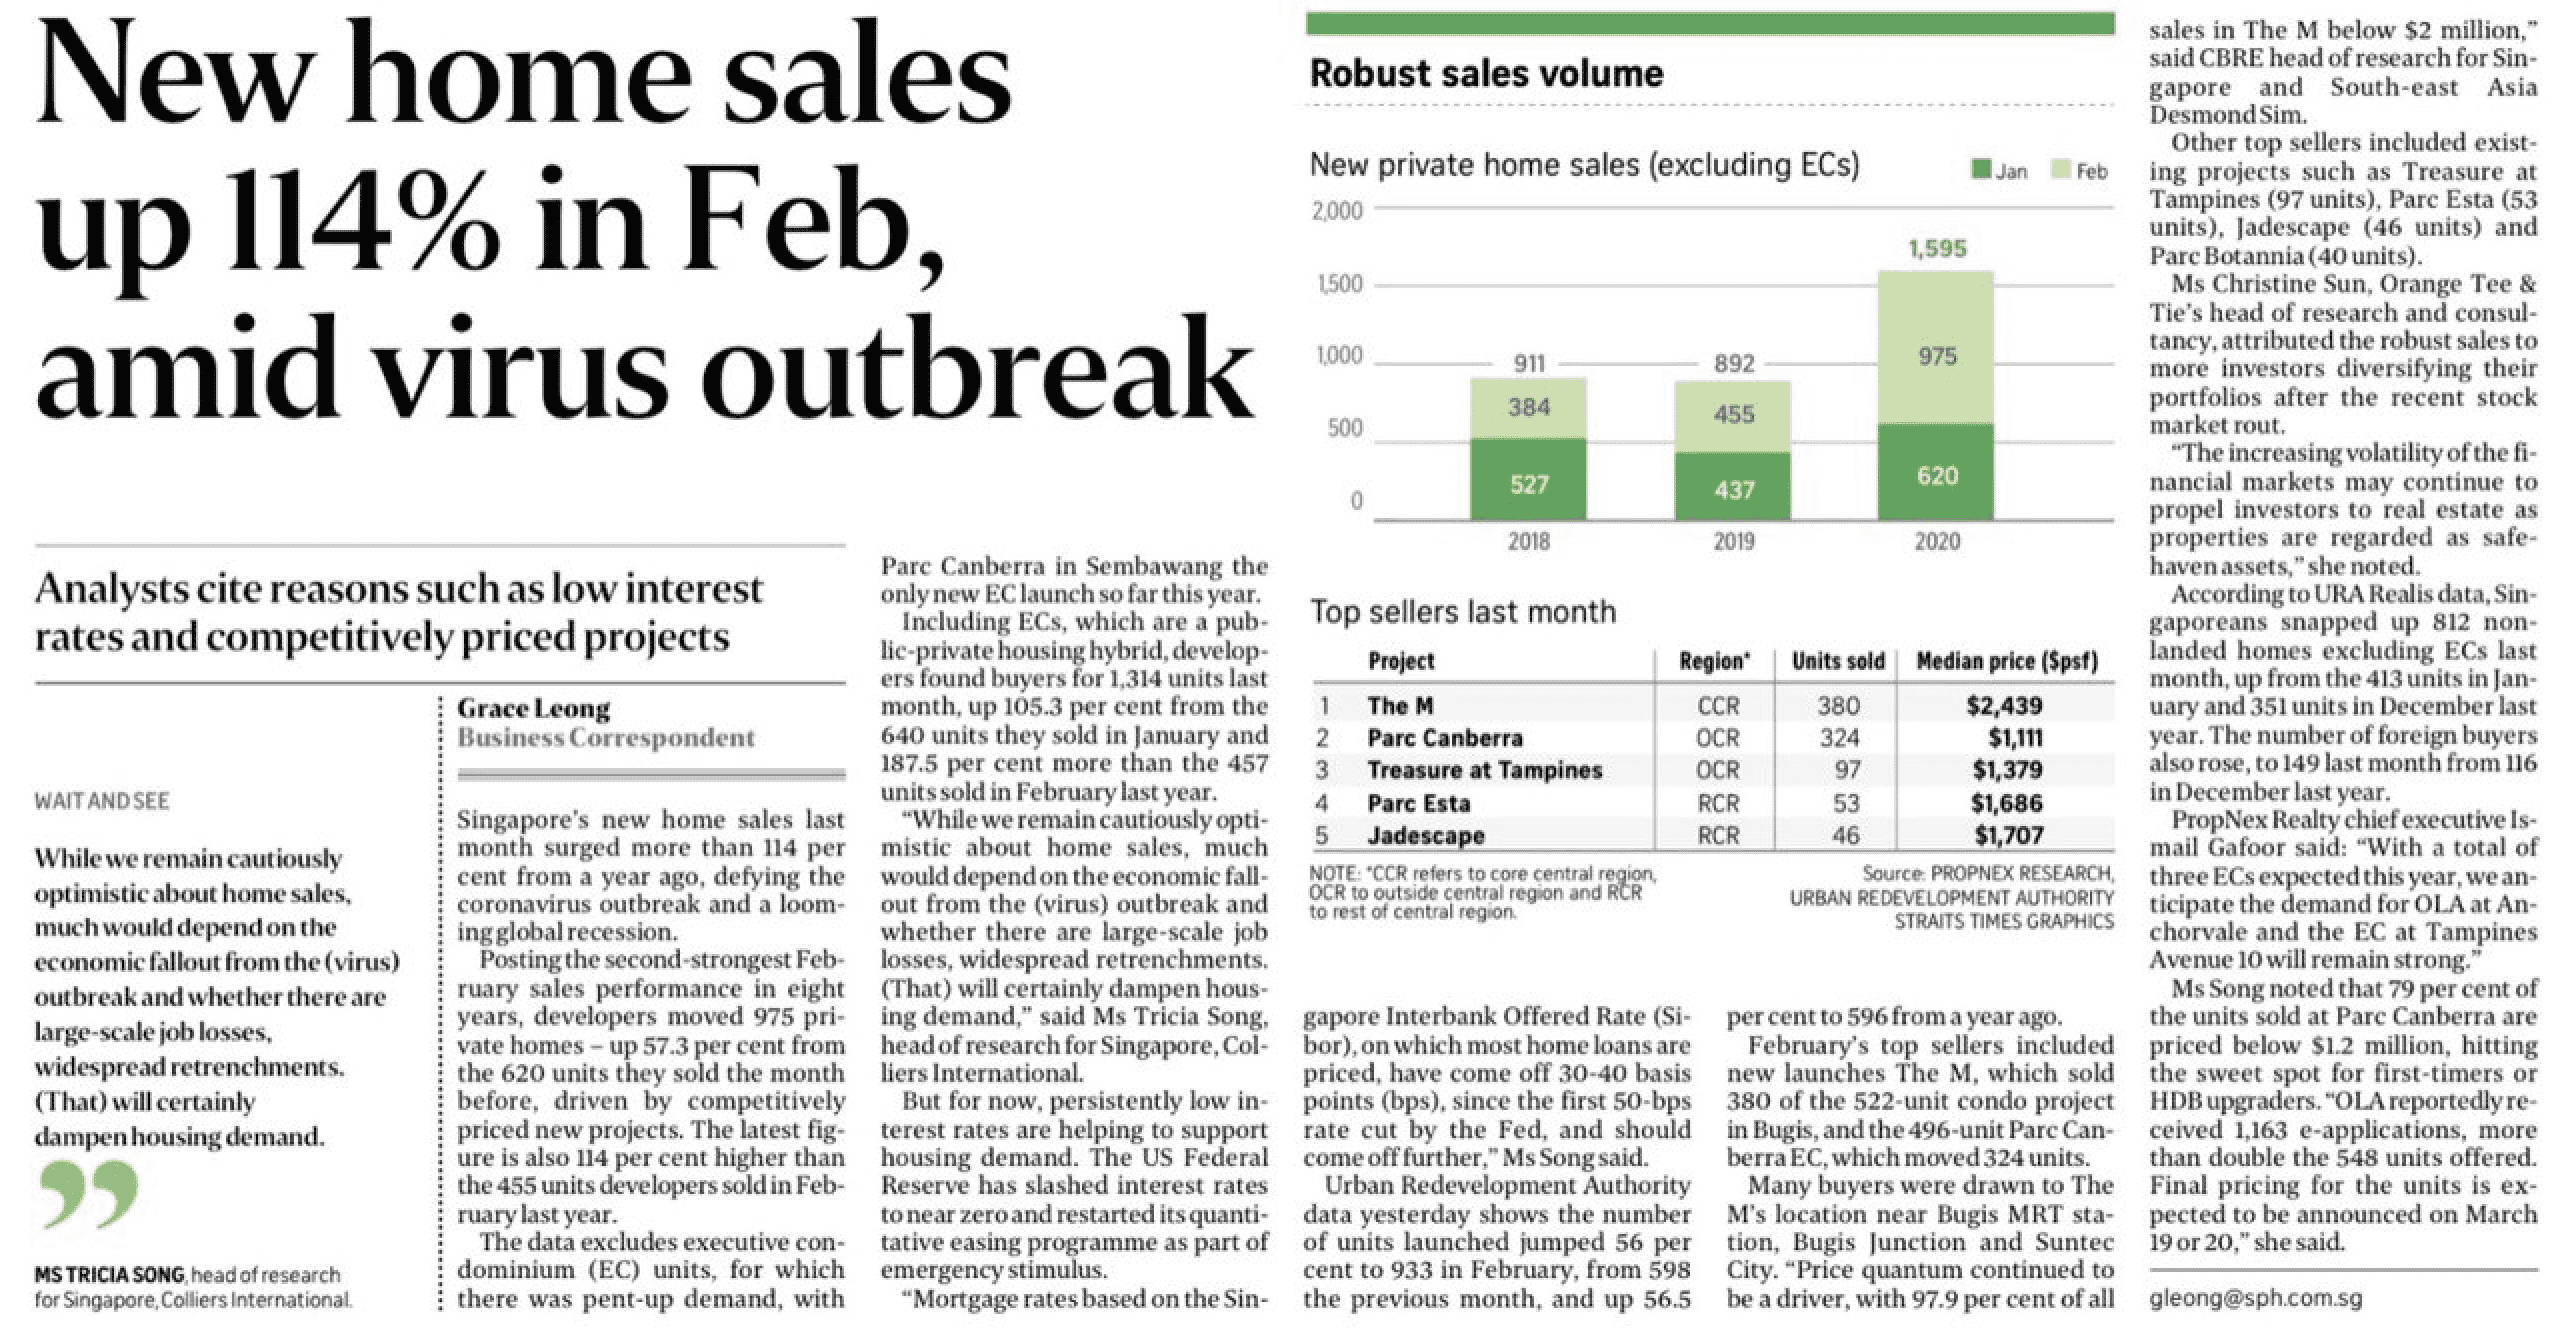 new-home-sales-up-114-in-feb-amid-virus-outbreak